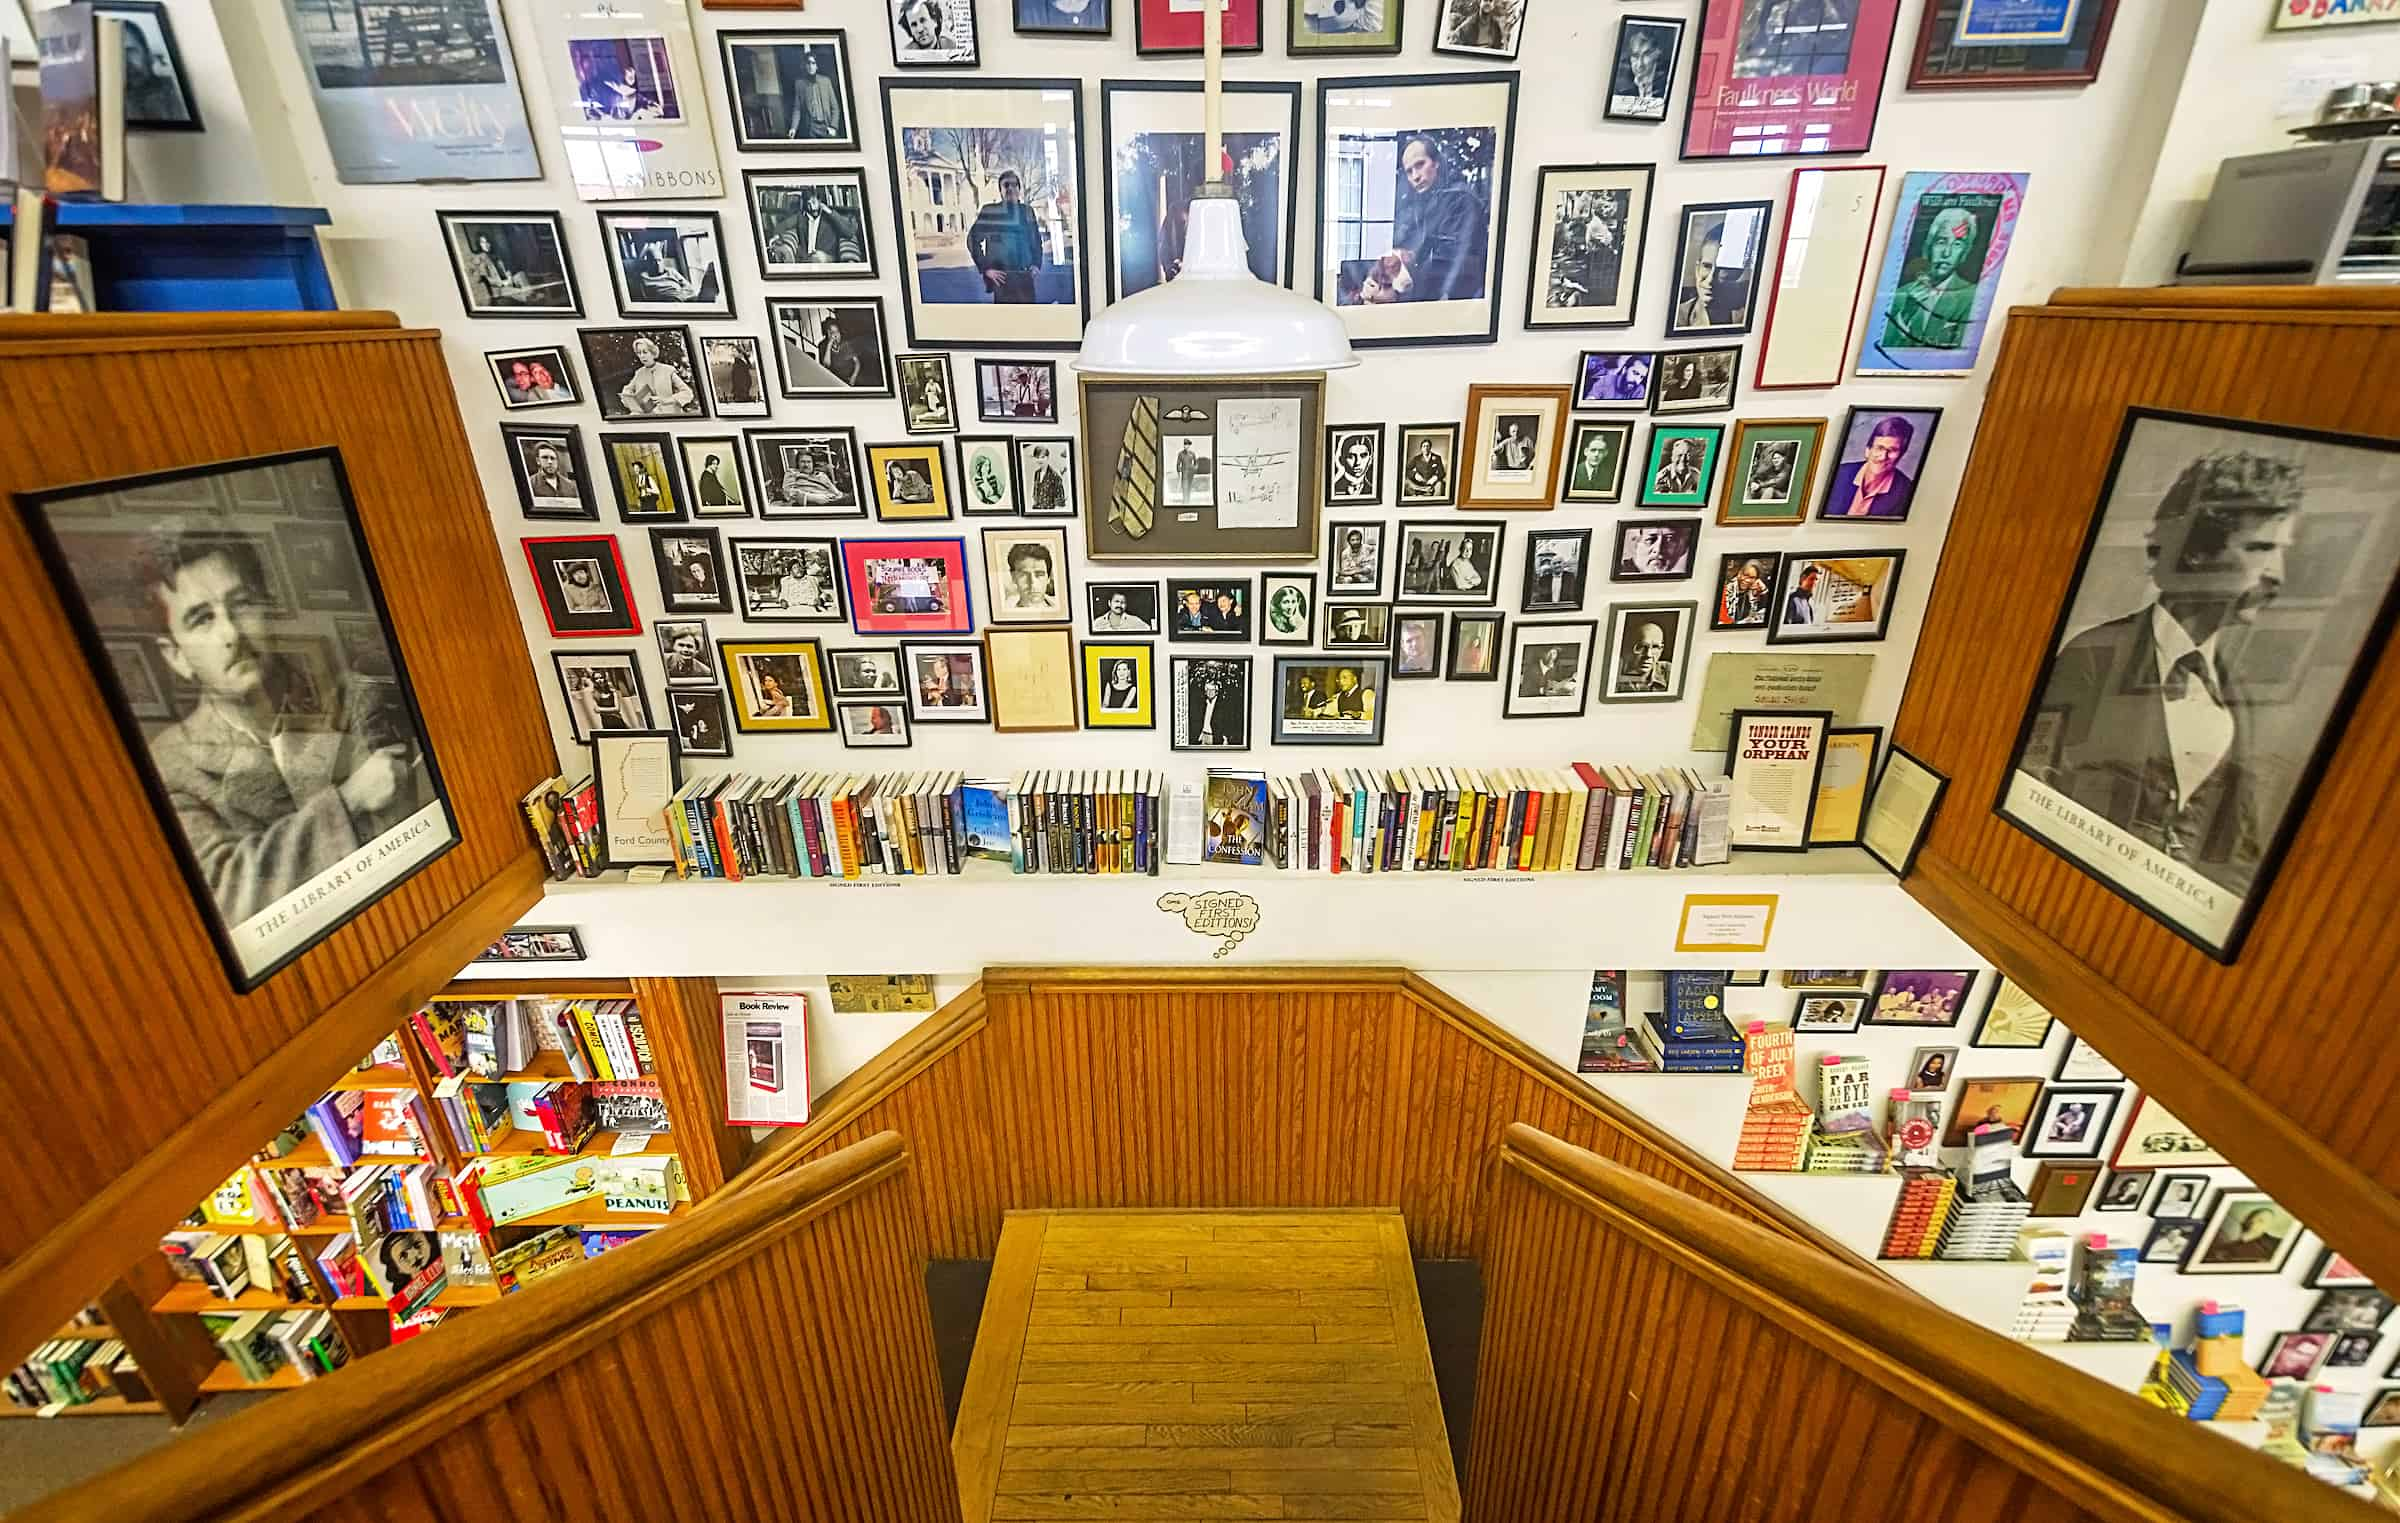 Photographs of authors and author signings fill the walls at Square Books in Oxford Mississippi